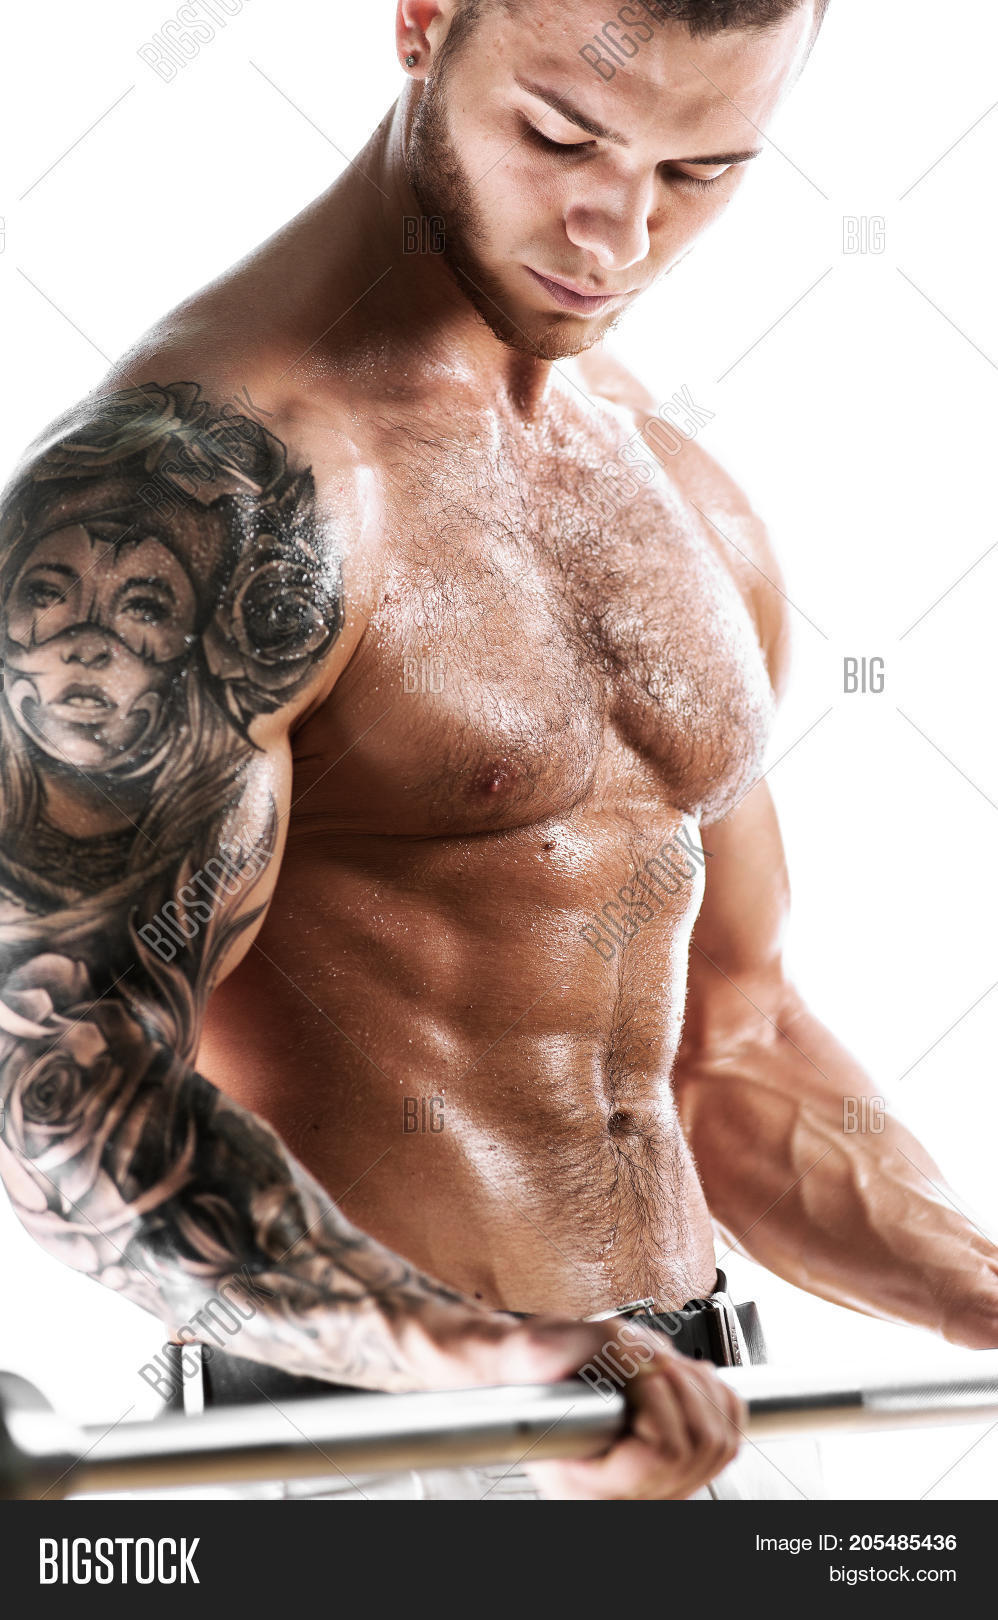 678459d7d2 Muscular sexy fitness model posing shirtless over white background. Studio  shot of Athletic young man